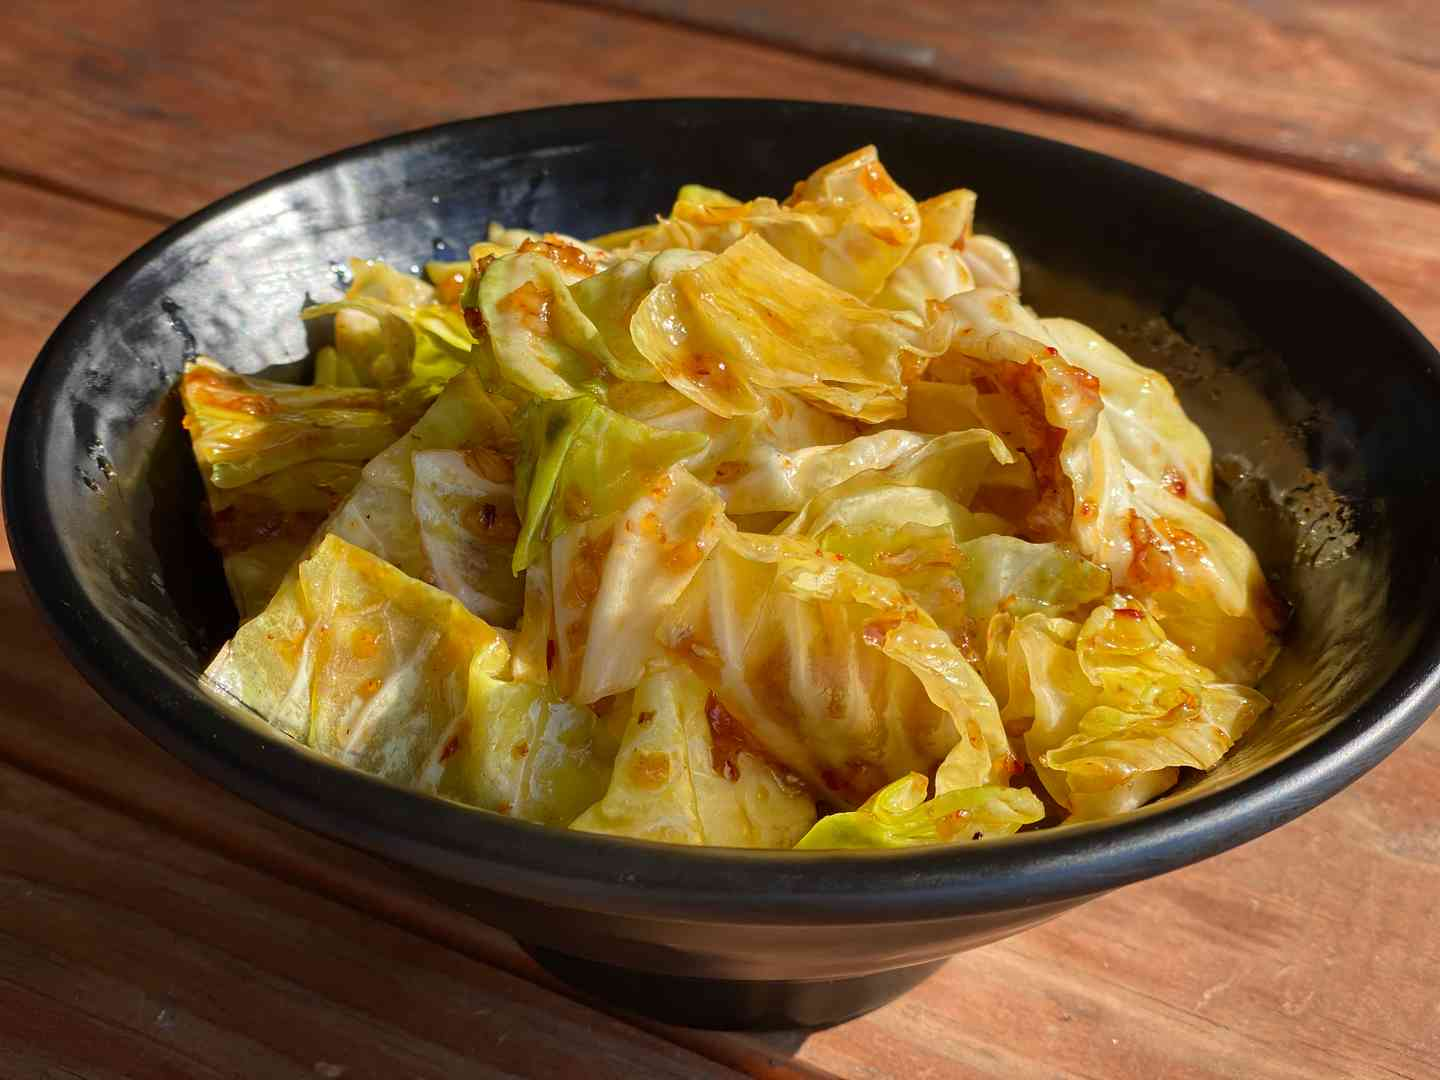 Thai Stir-Fried Cabbage (galam plee pad nam pla)